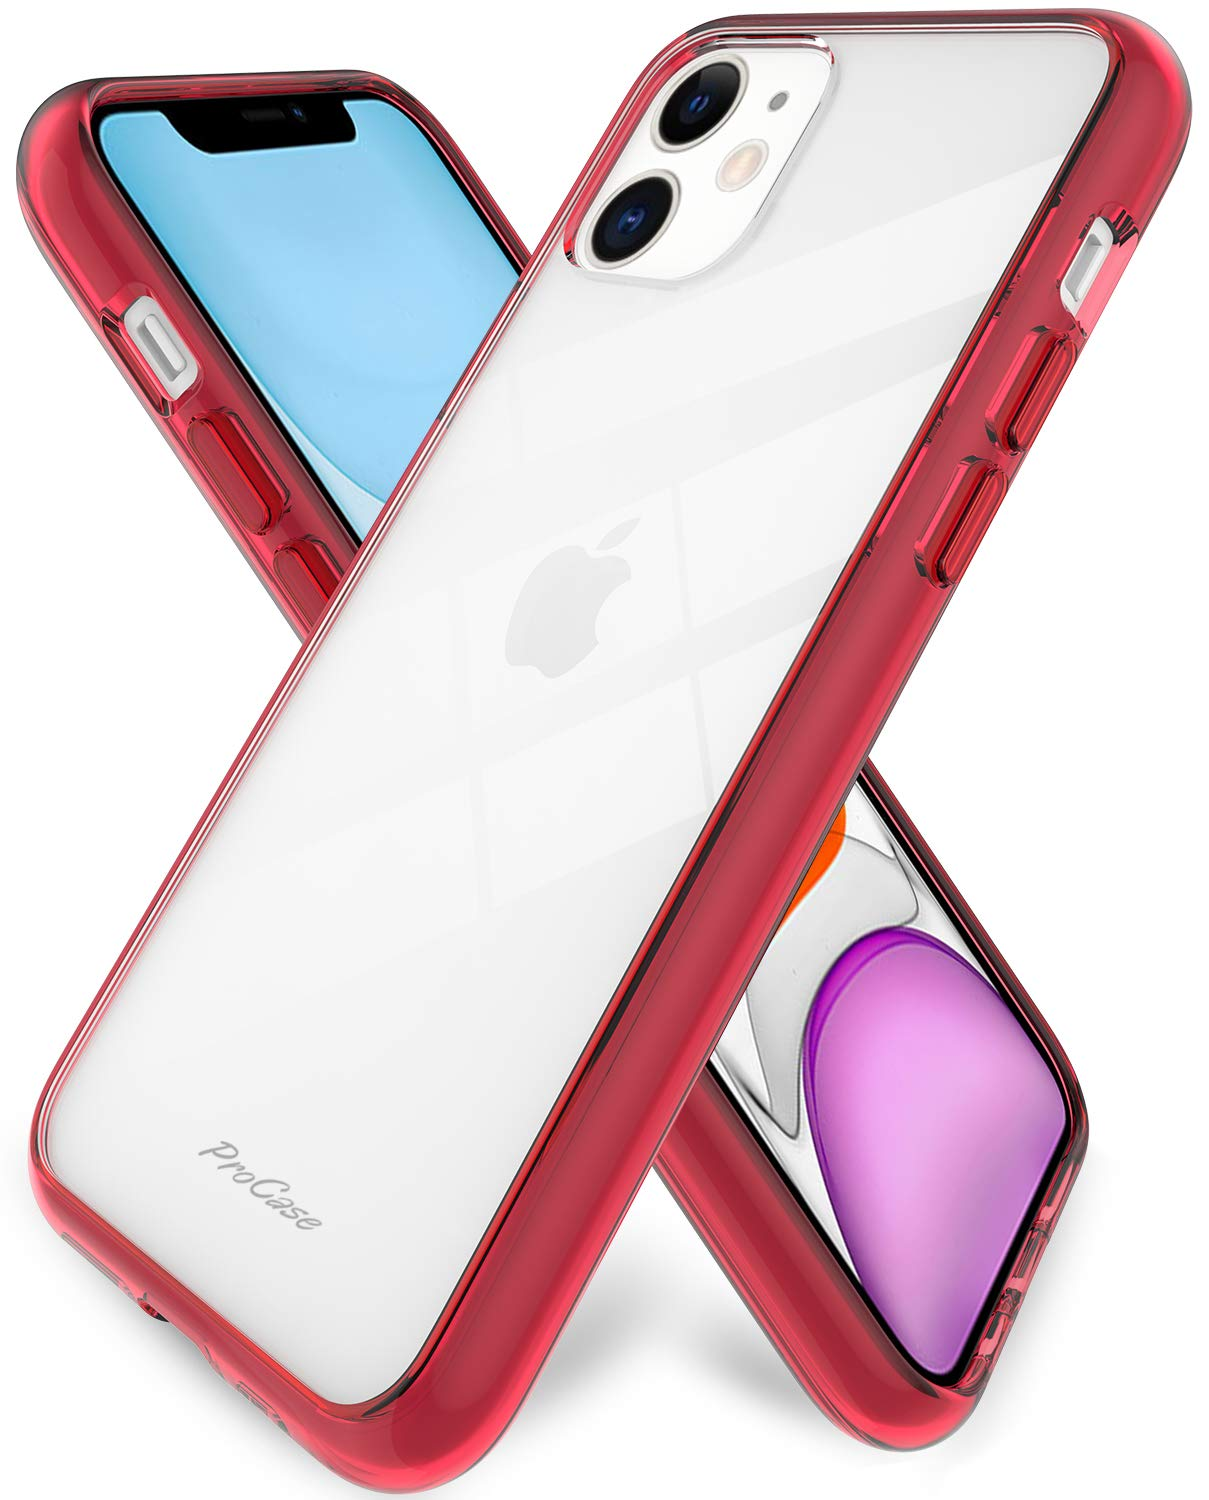 Procase iPhone 11 Case Clear, Hybrid Slim Crystal Clear Case Shock-Absorption Anti-Scratch Bumper Cover Protective Case with Soft TPU + Hard PC Back Cover for iPhone 11 6.1 Inch 2019 –Crystalred